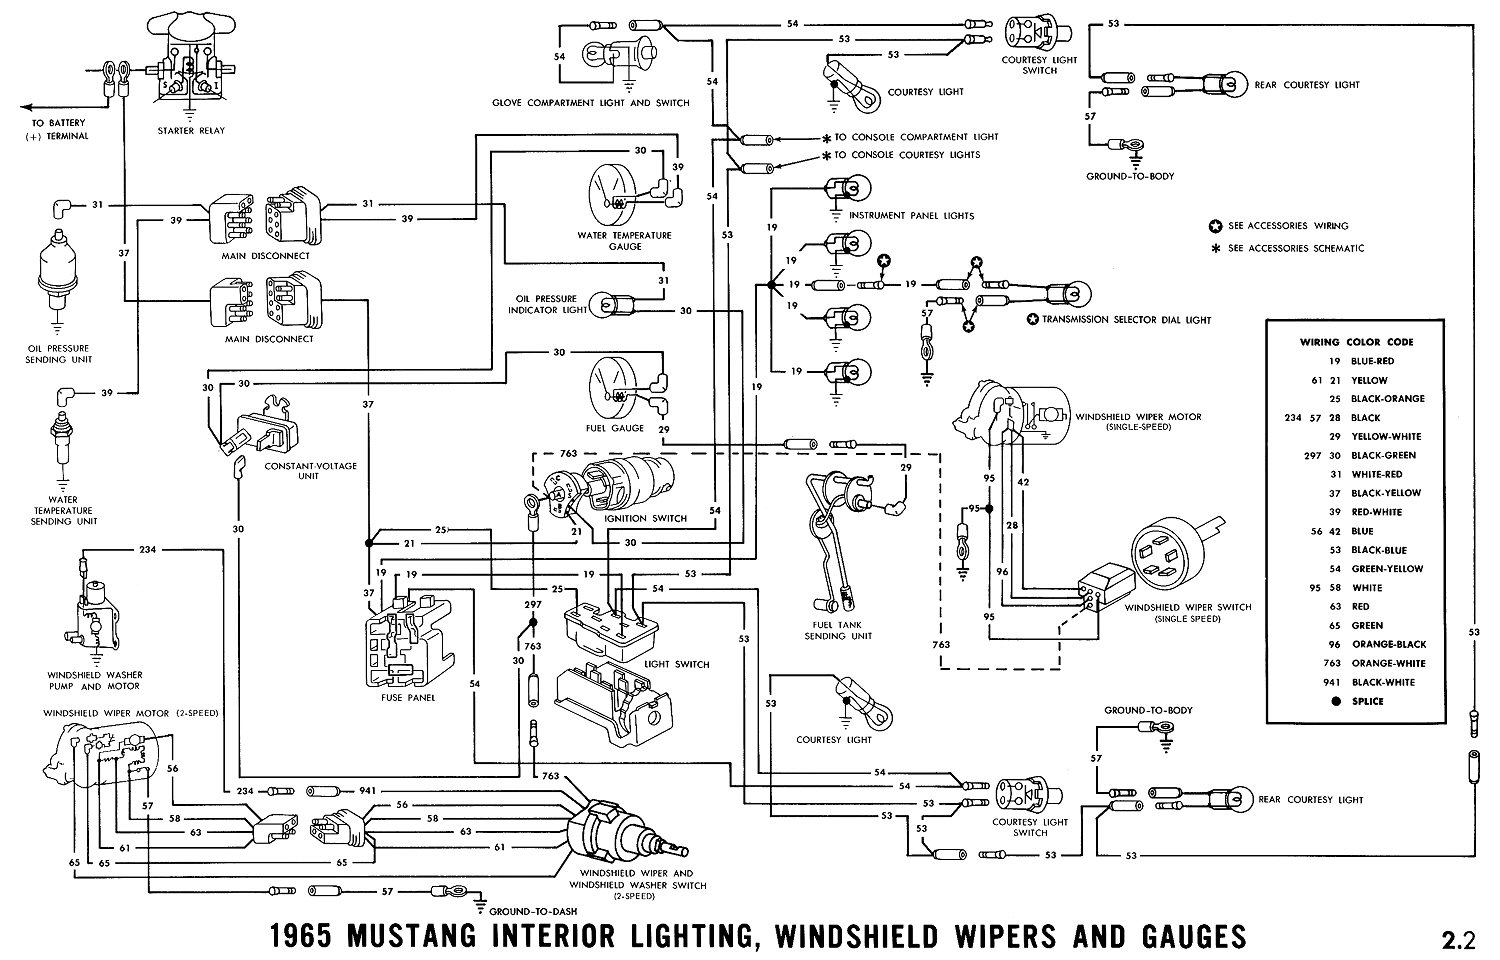 hight resolution of 1965 mustang wiring diagrams average joe restoration 65 gmc truck wiring diagram 65 mustang wiring diagrams